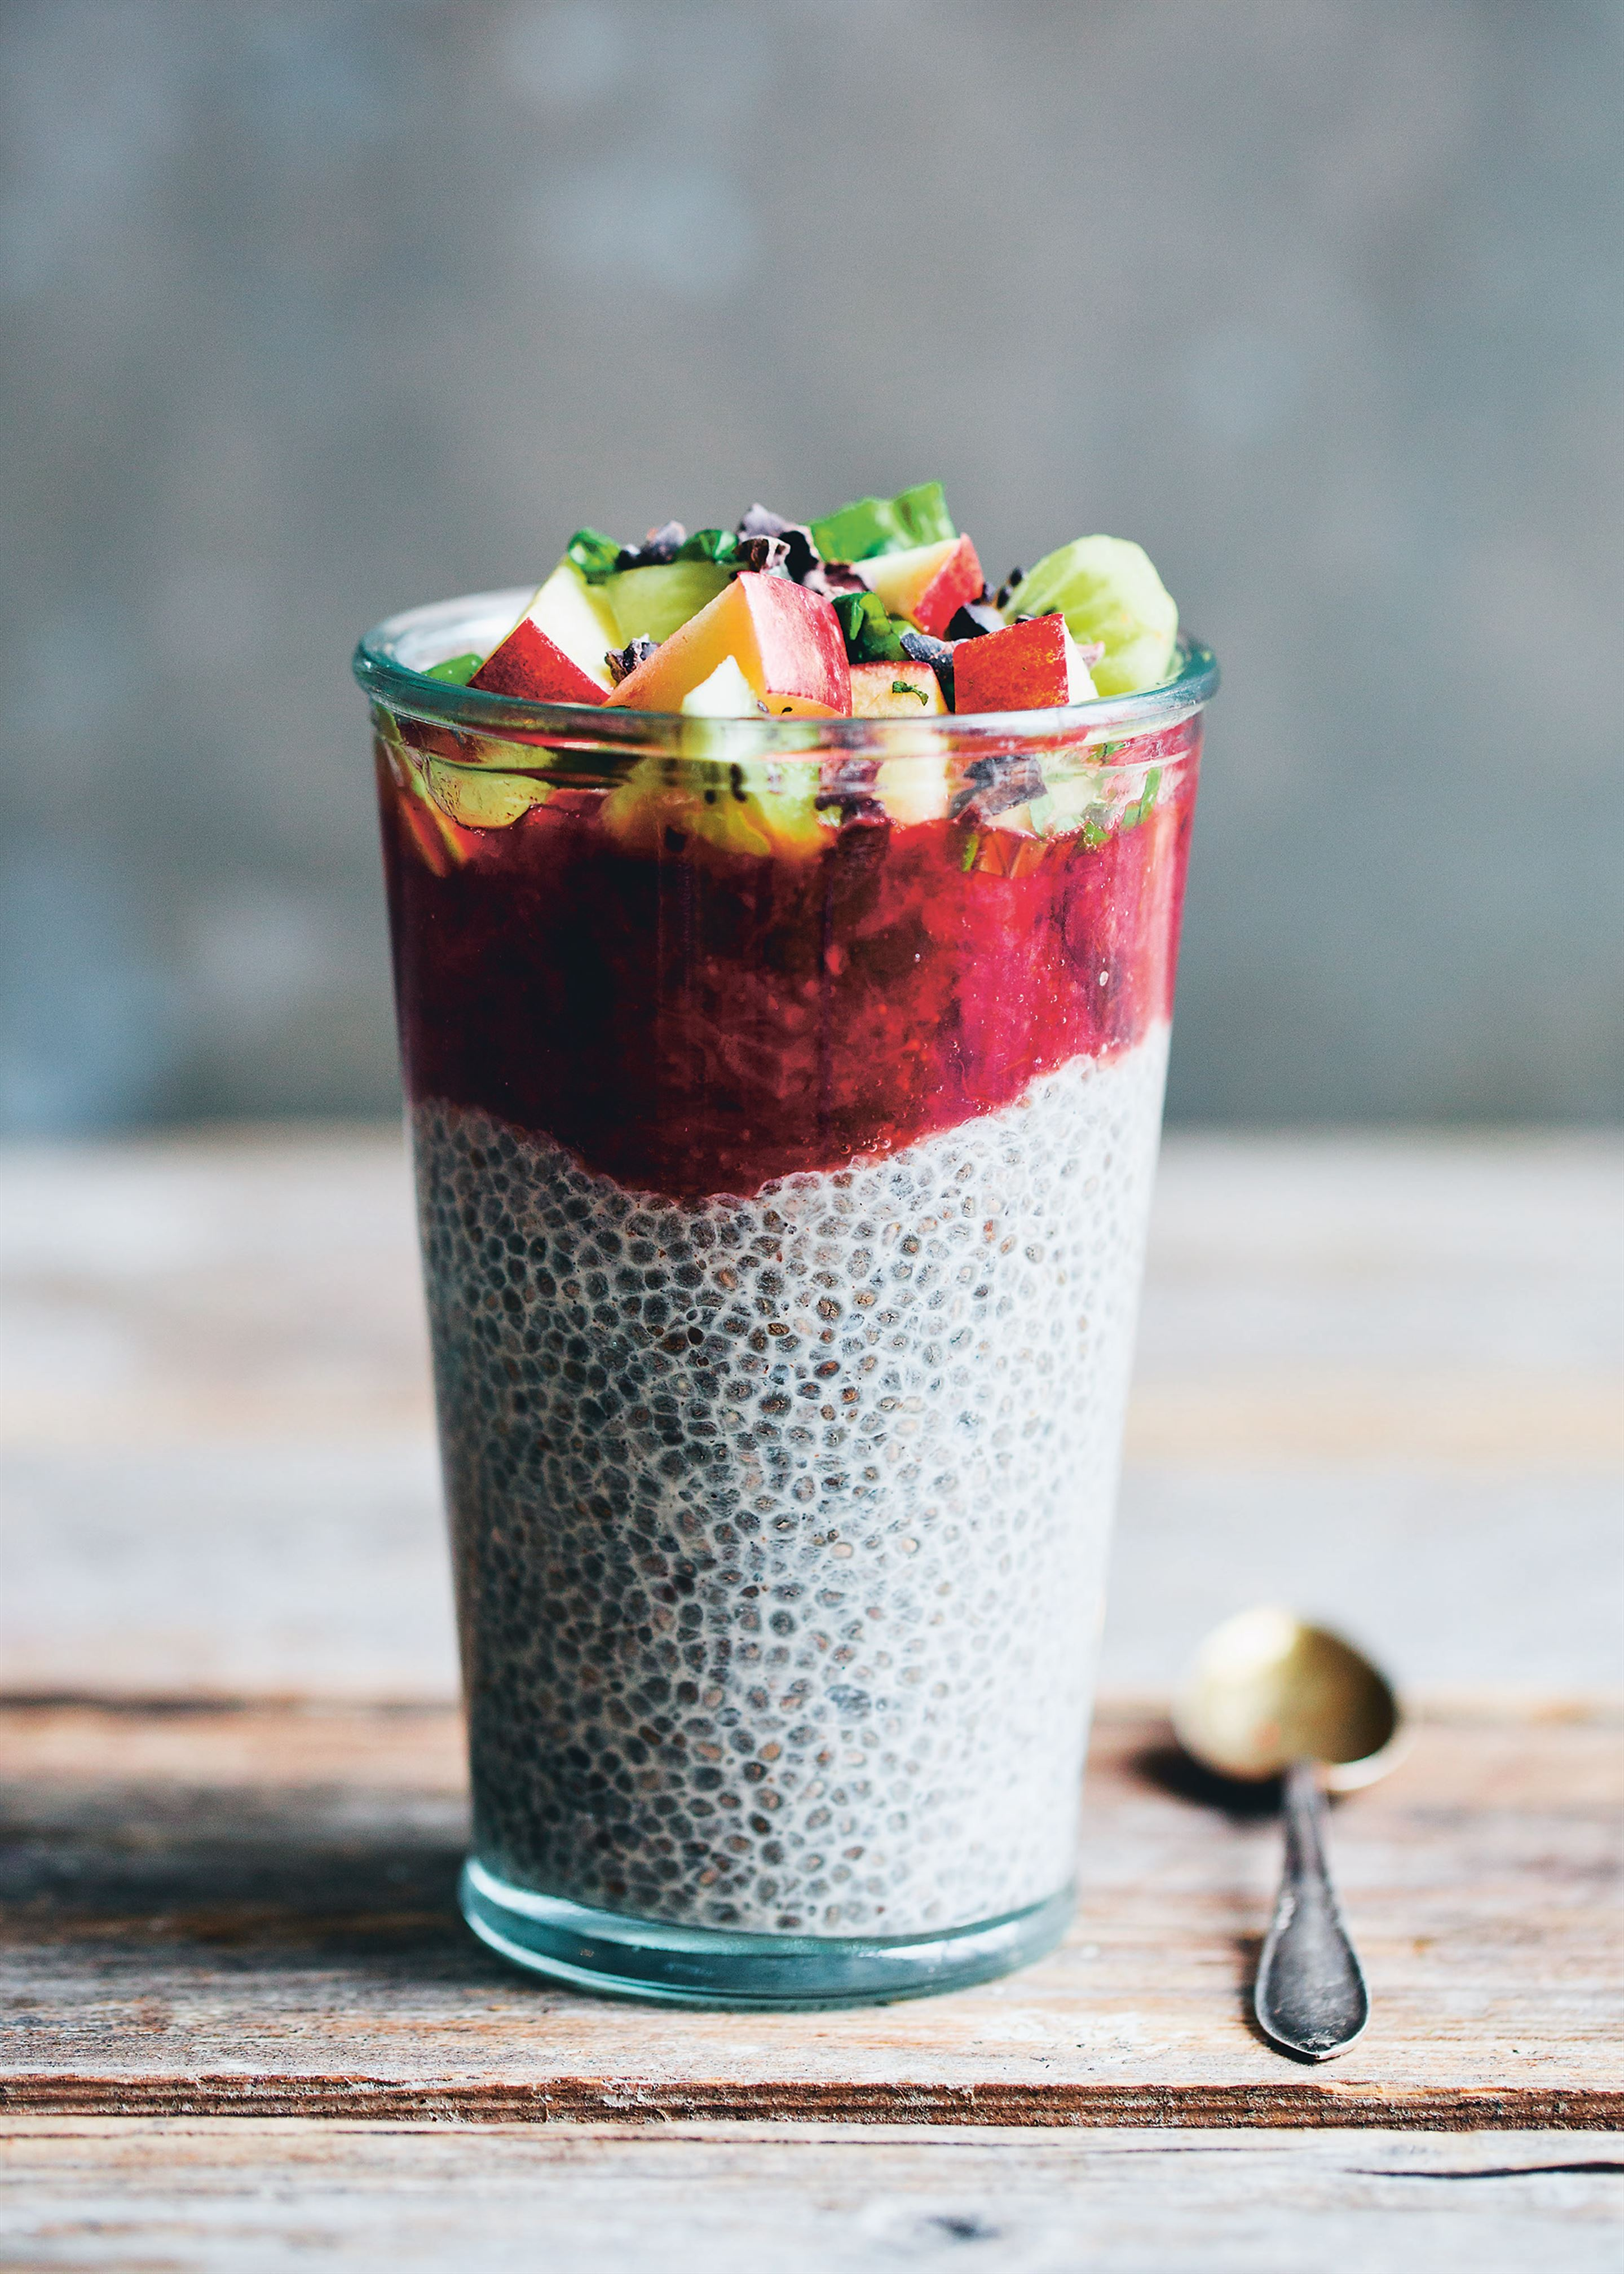 Chia and strawberry pudding